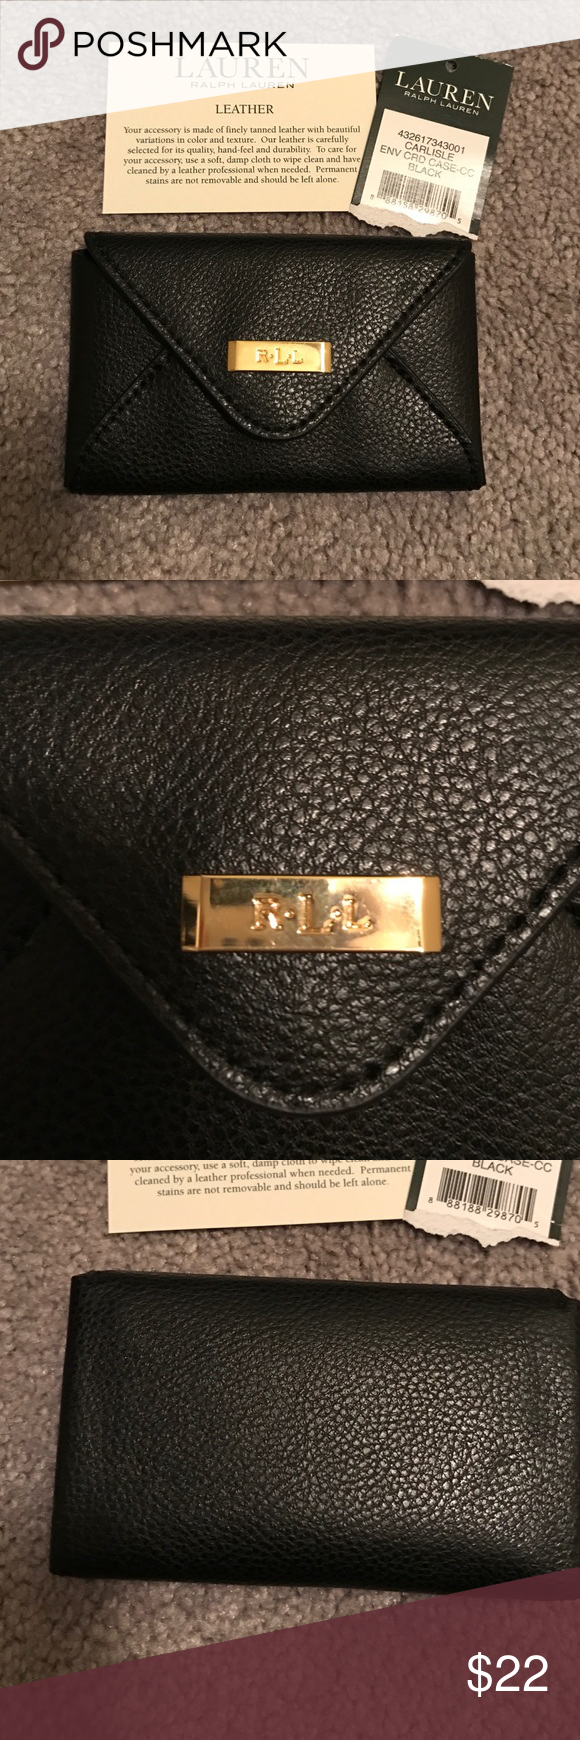 Ralph lauren black leather card case nwt leather card case card ralph lauren black leather card case perfect for credit cards or business cards snap closure ralph lauren accessories key card holders reheart Gallery